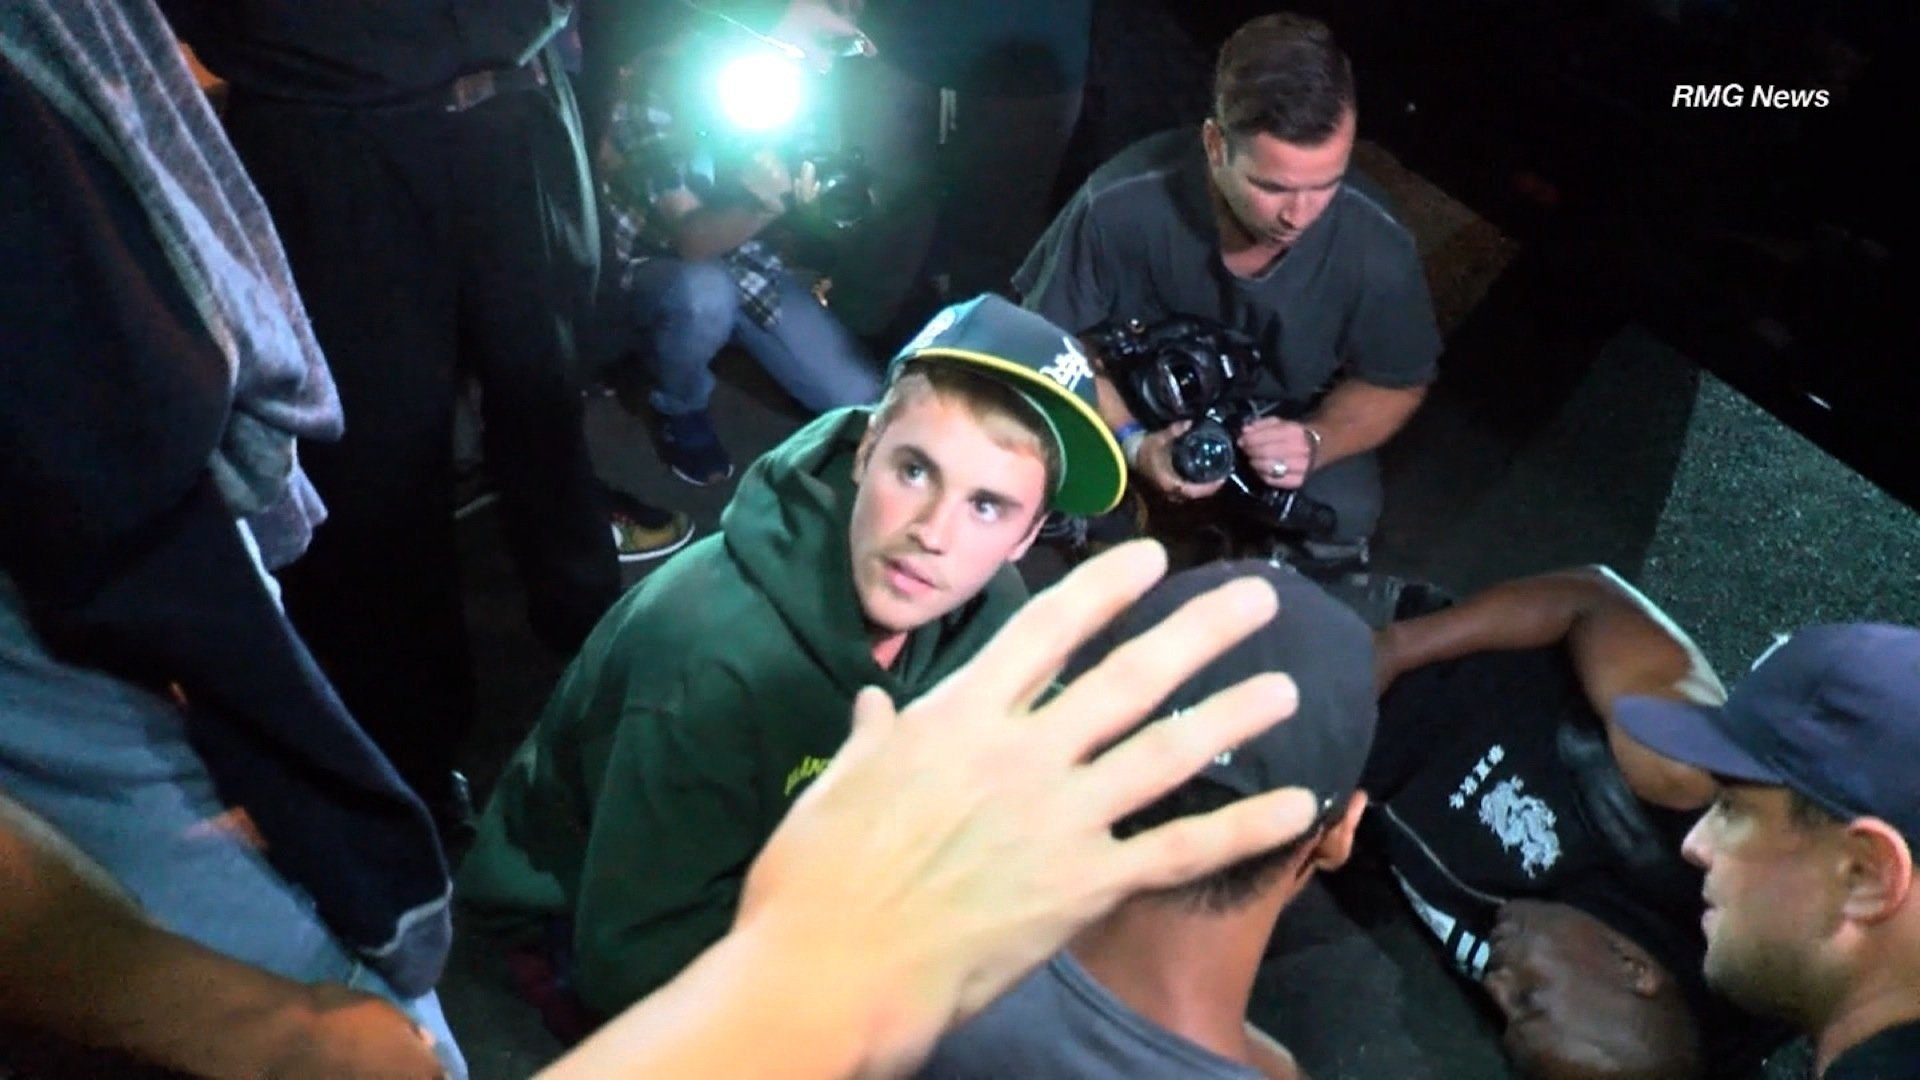 Justin Bieber involved in collision with photographer